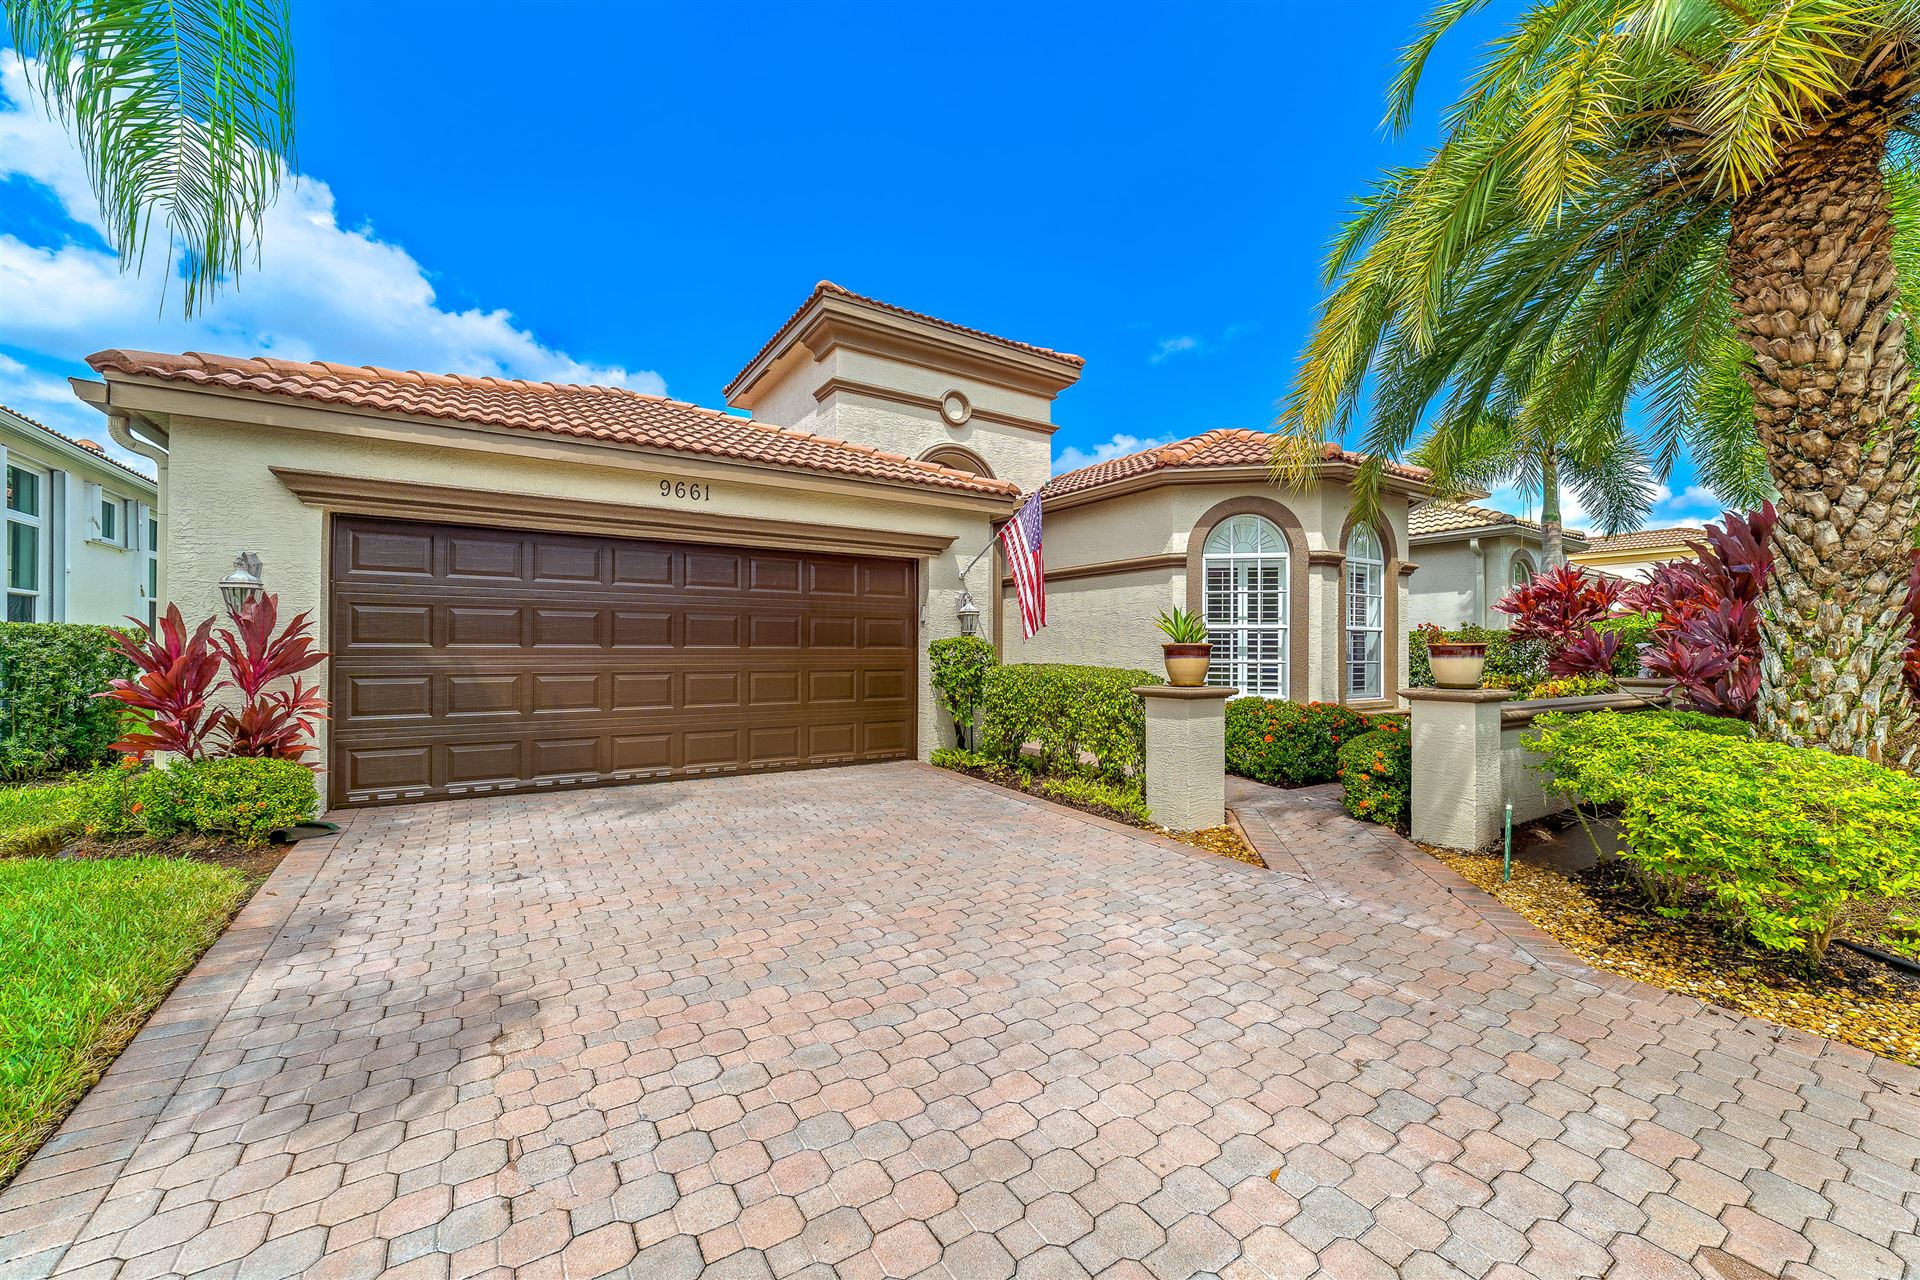 9661 Via Elegante, Wellington, FL 33411 - #: RX-10654286